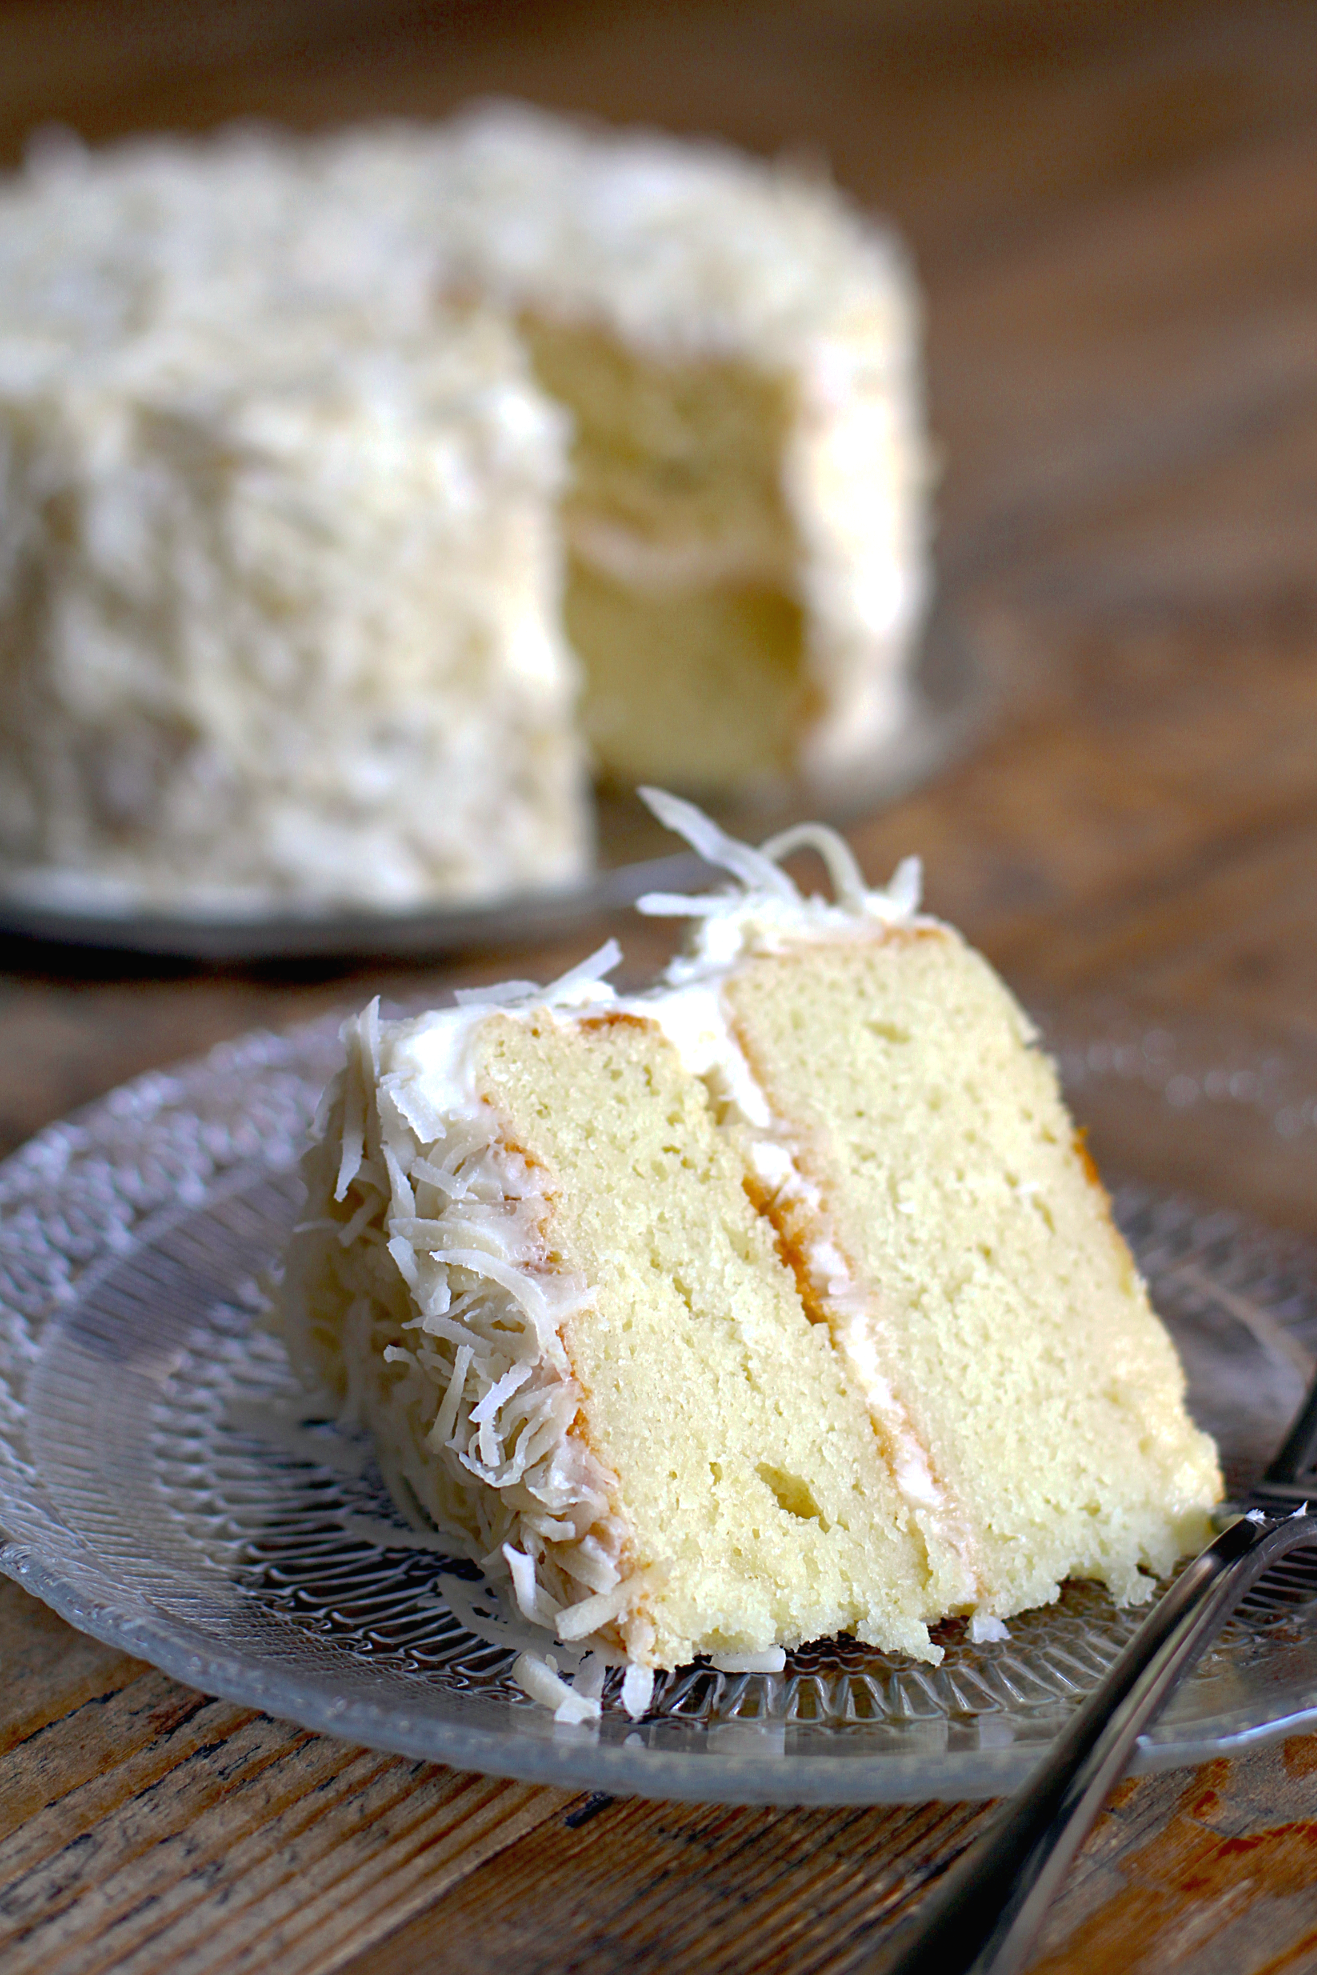 Cake With Cream Cheese Frosting : Coconut Cake with Cream Cheese Frosting - Two of a Kind